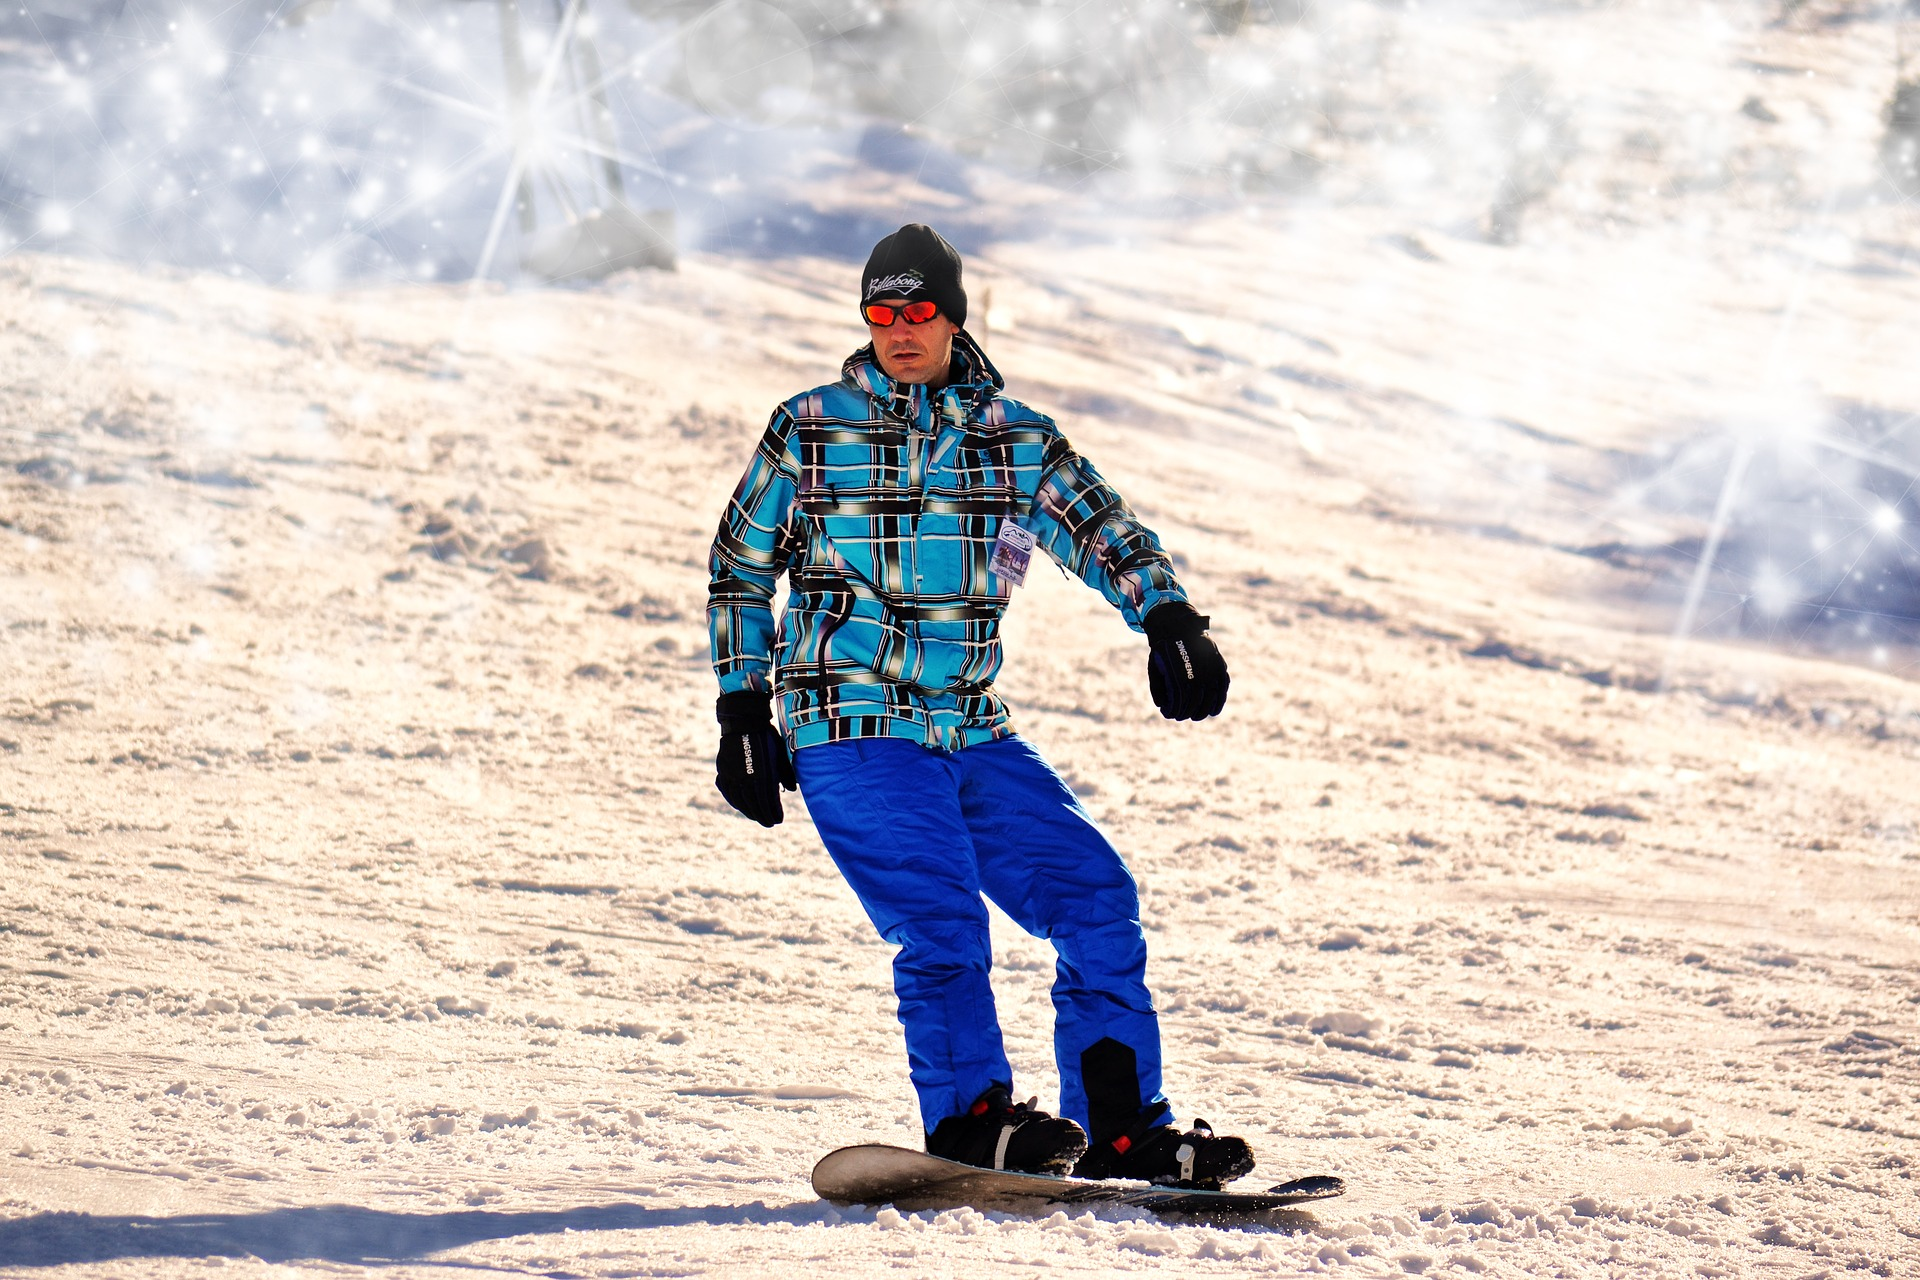 man snowboarding and wearing the best snowboarding boots